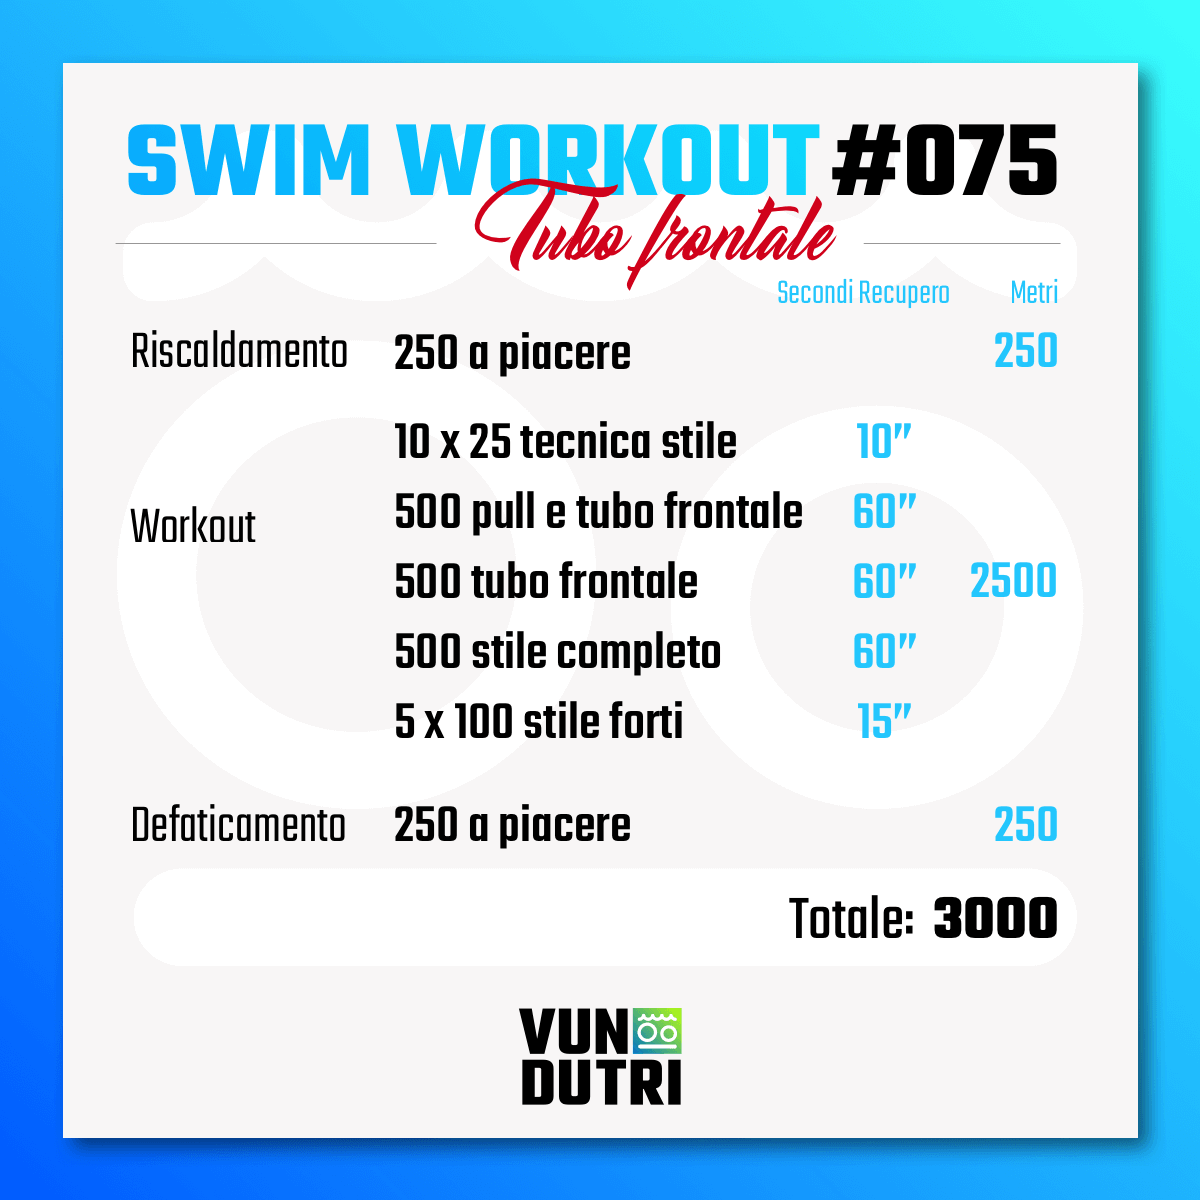 Swim workout 075 - Tubo frontale